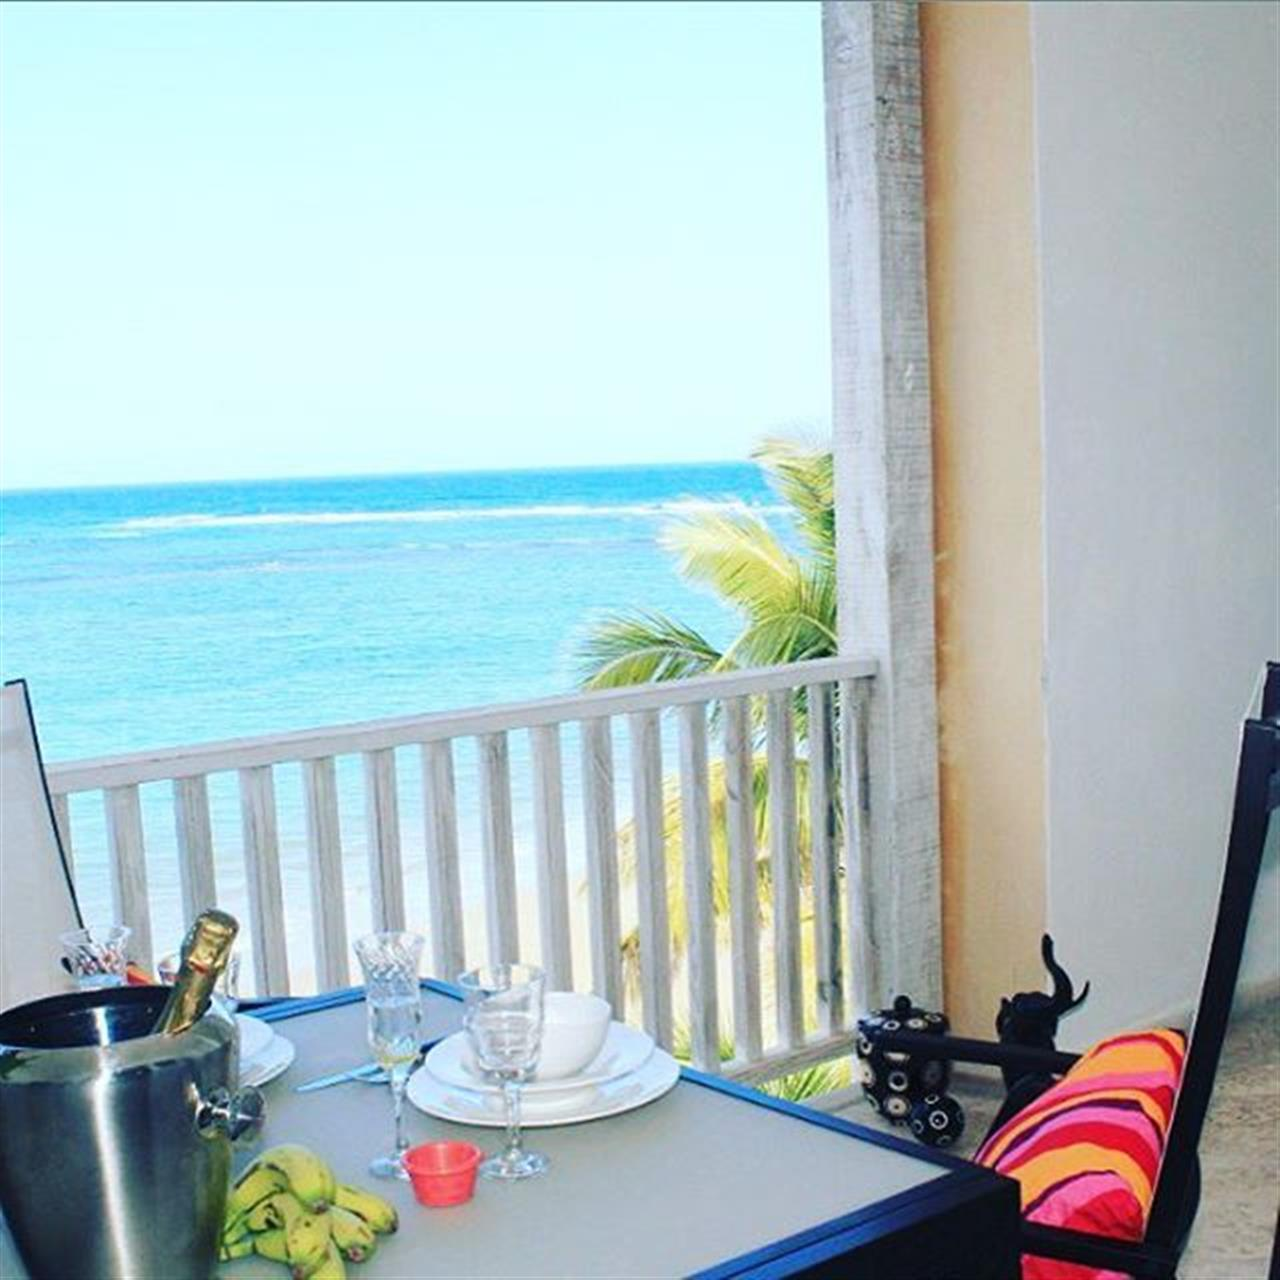 Good morning! Lovely view to wake up to. #Cabarete